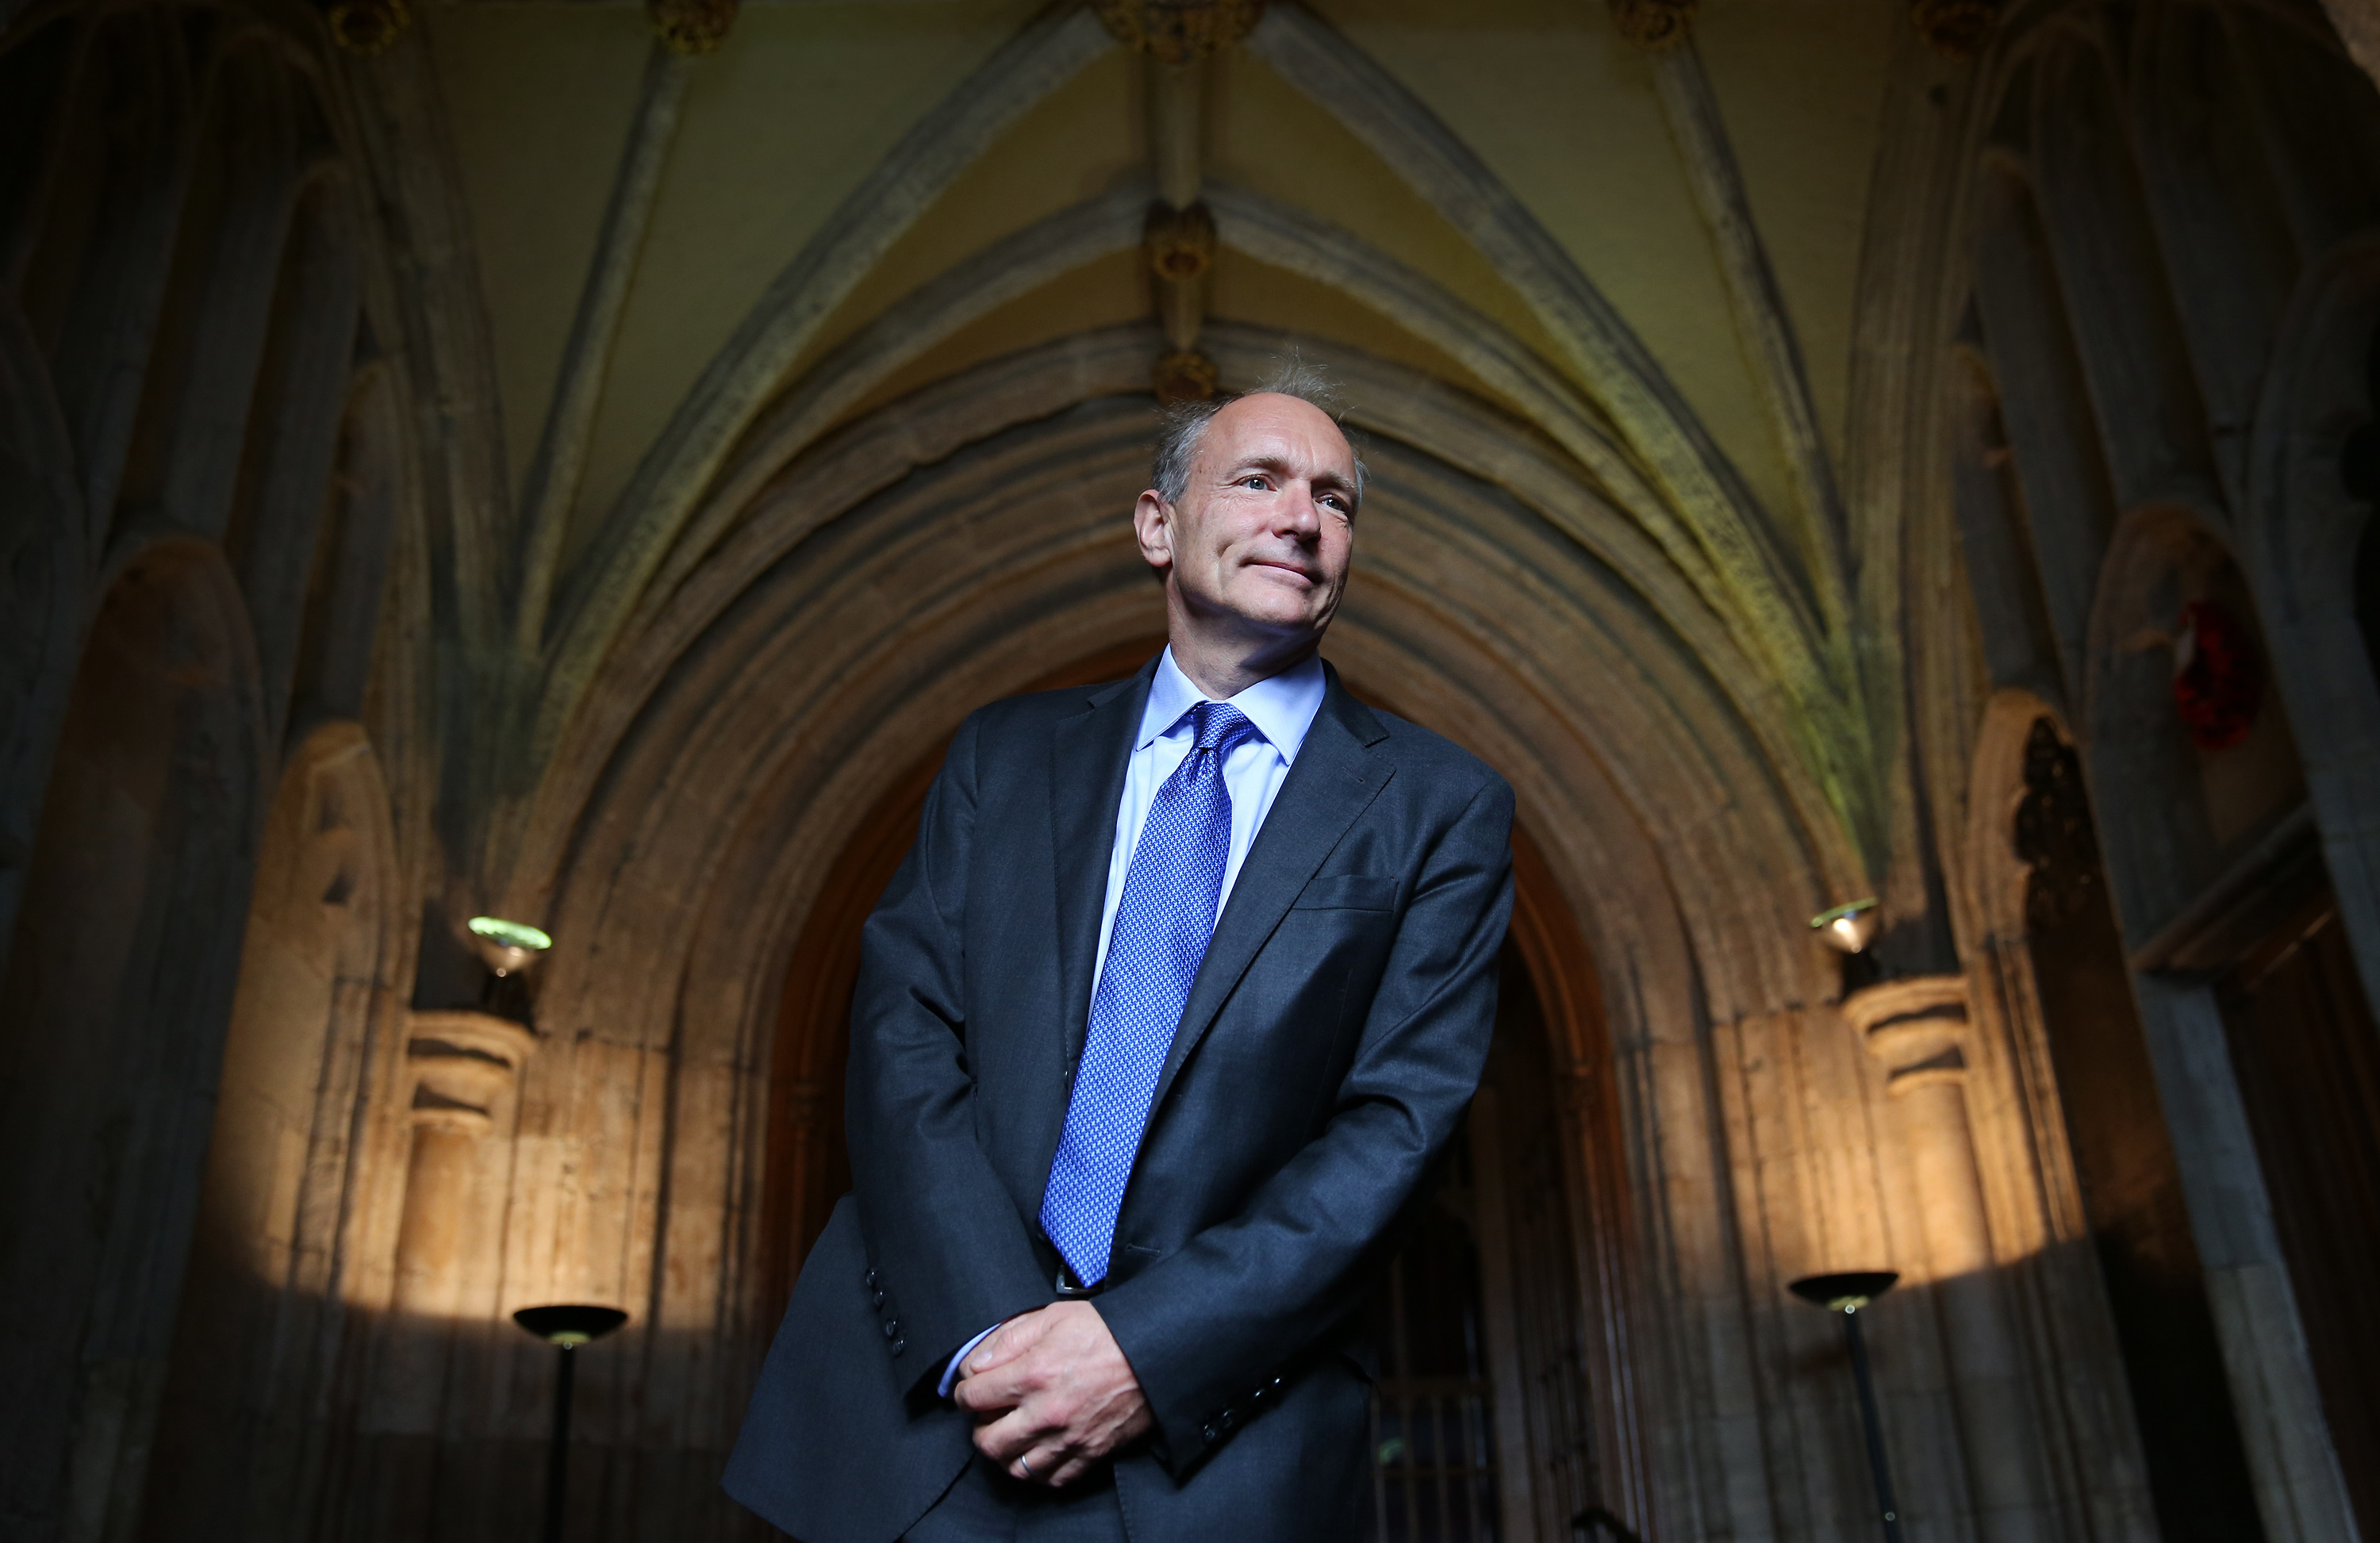 Sir Tim Berners-Lee  inventor of the World Wide Web arrives at Guildhall to receive an Honorary Freedom of the City of London award on September 24, 2014 in London, England.